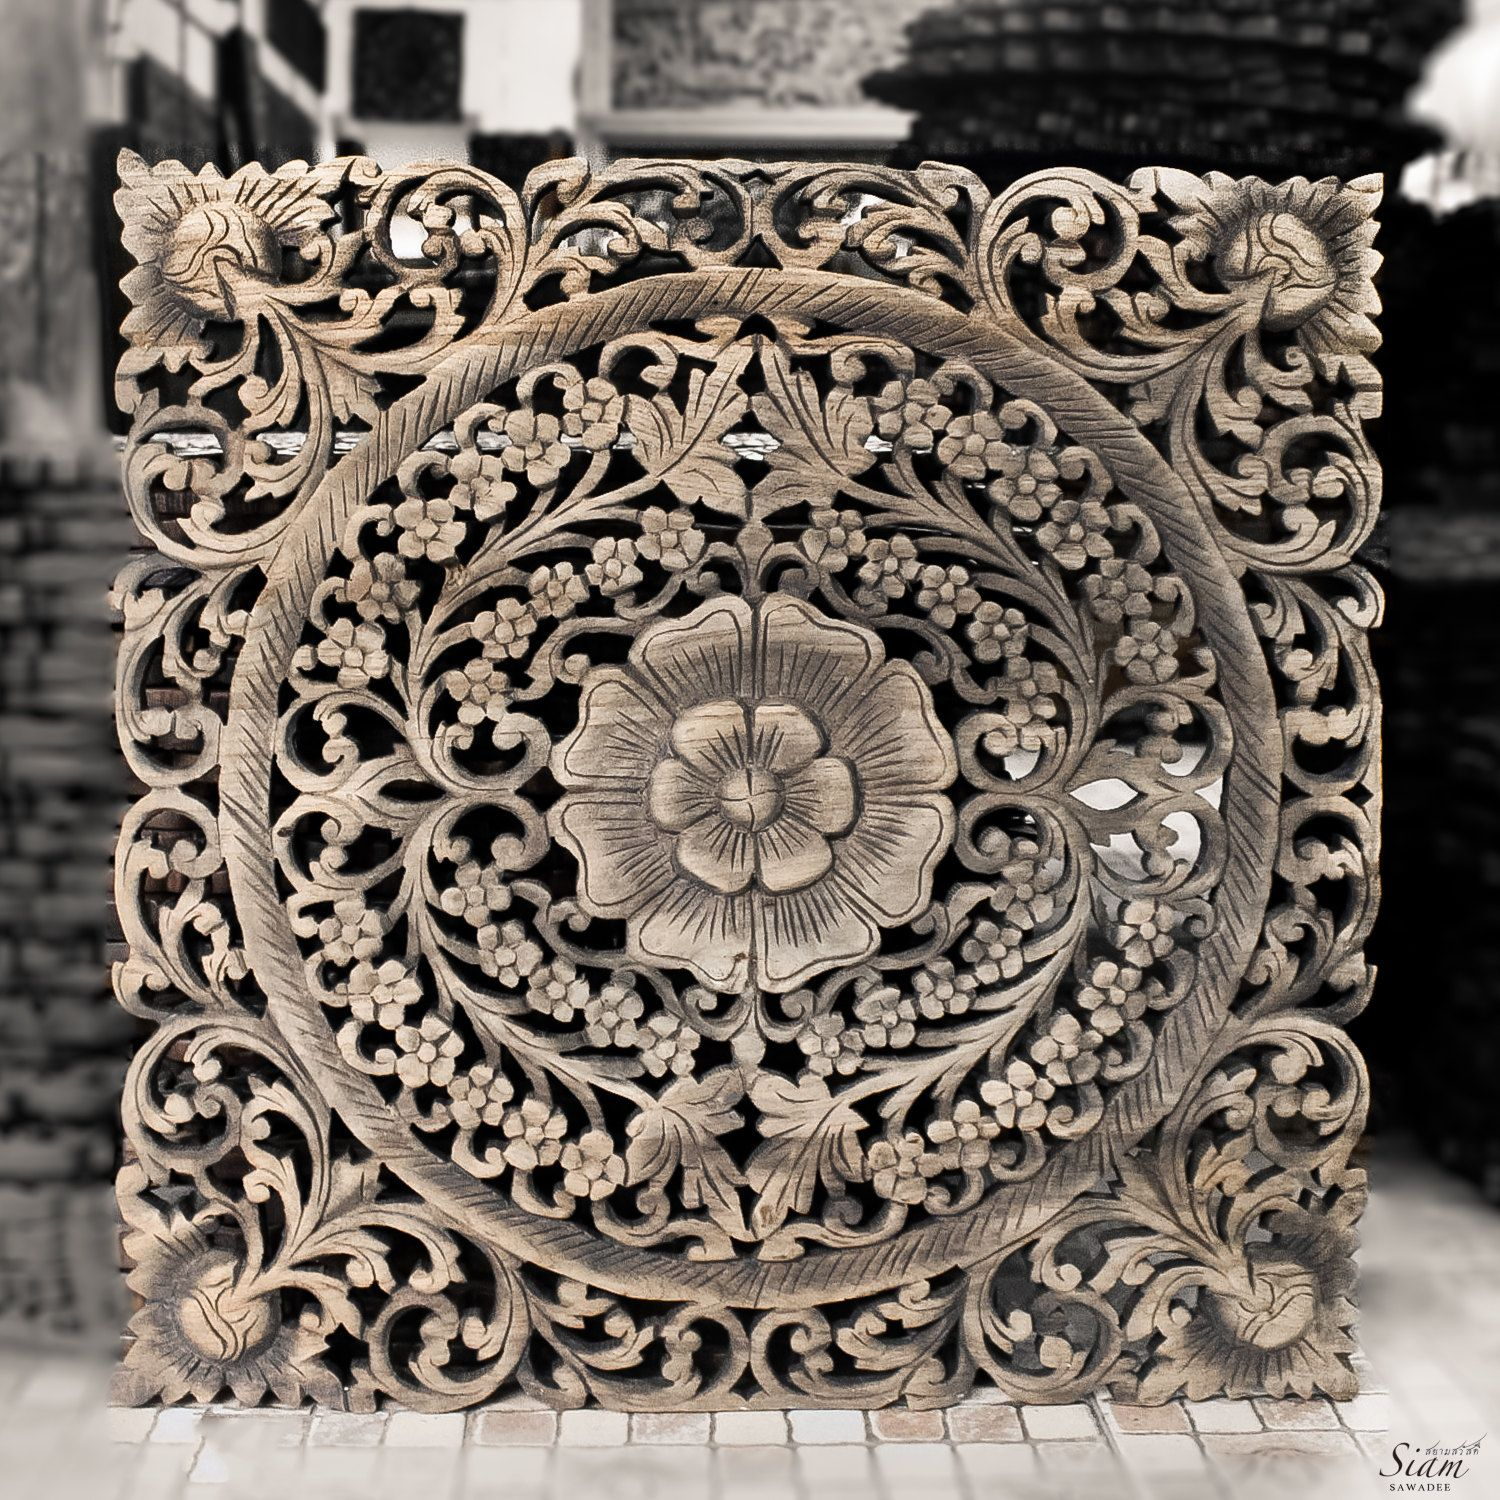 King Size Balinese Bed Headboard Wood Carving Carved Wood Wall Hanging Carved Wood Wall Art Carved Wall Art